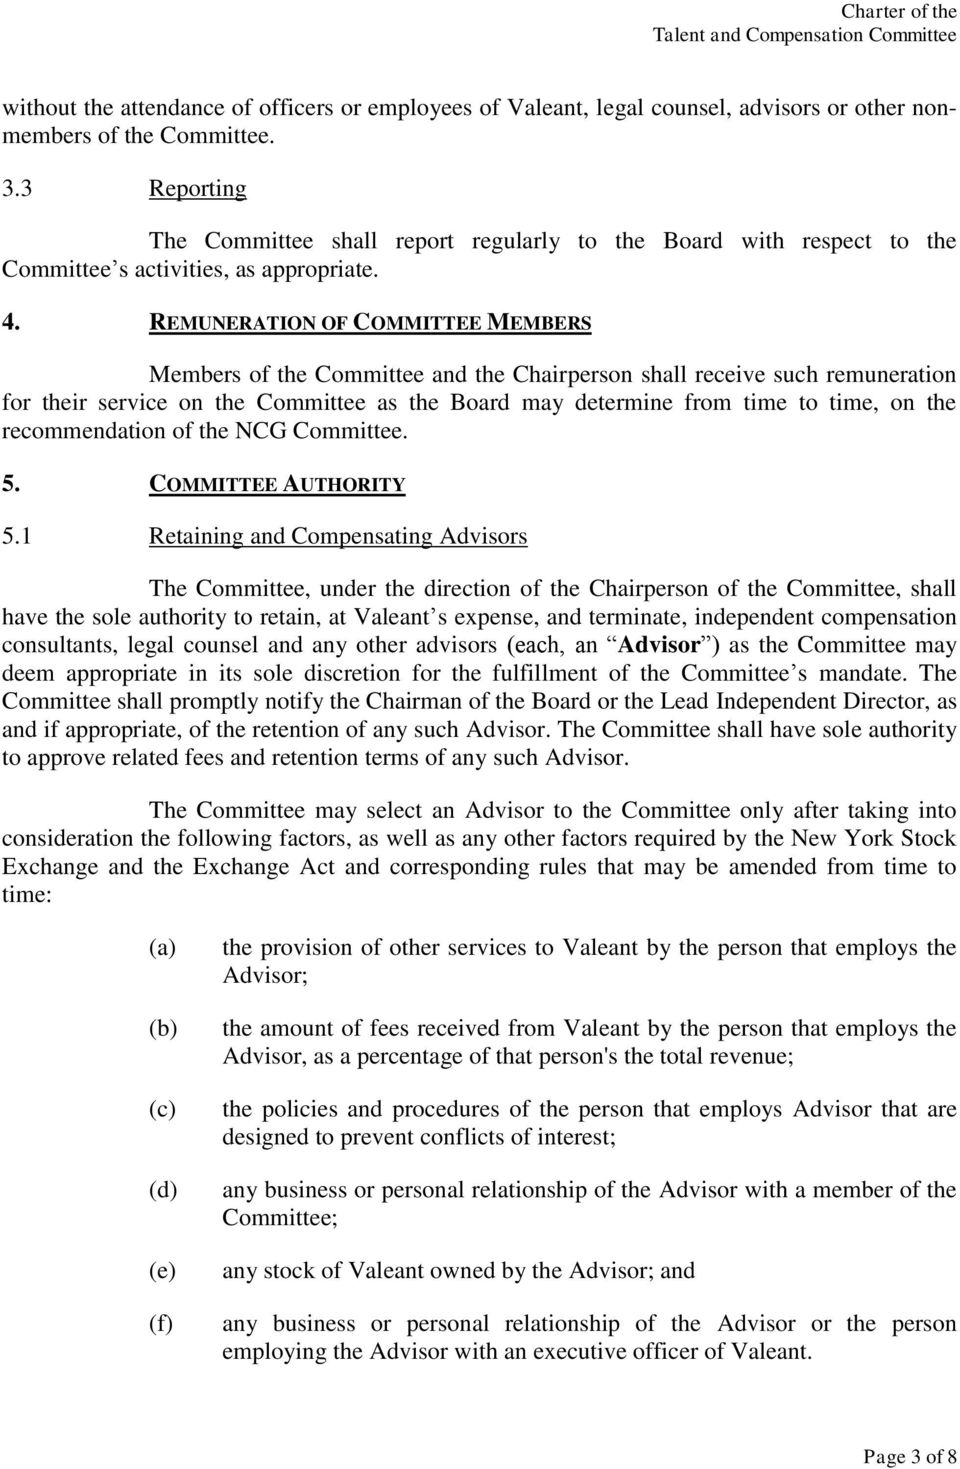 REMUNERATION OF COMMITTEE MEMBERS Members of the Committee and the Chairperson shall receive such remuneration for their service on the Committee as the Board may determine from time to time, on the